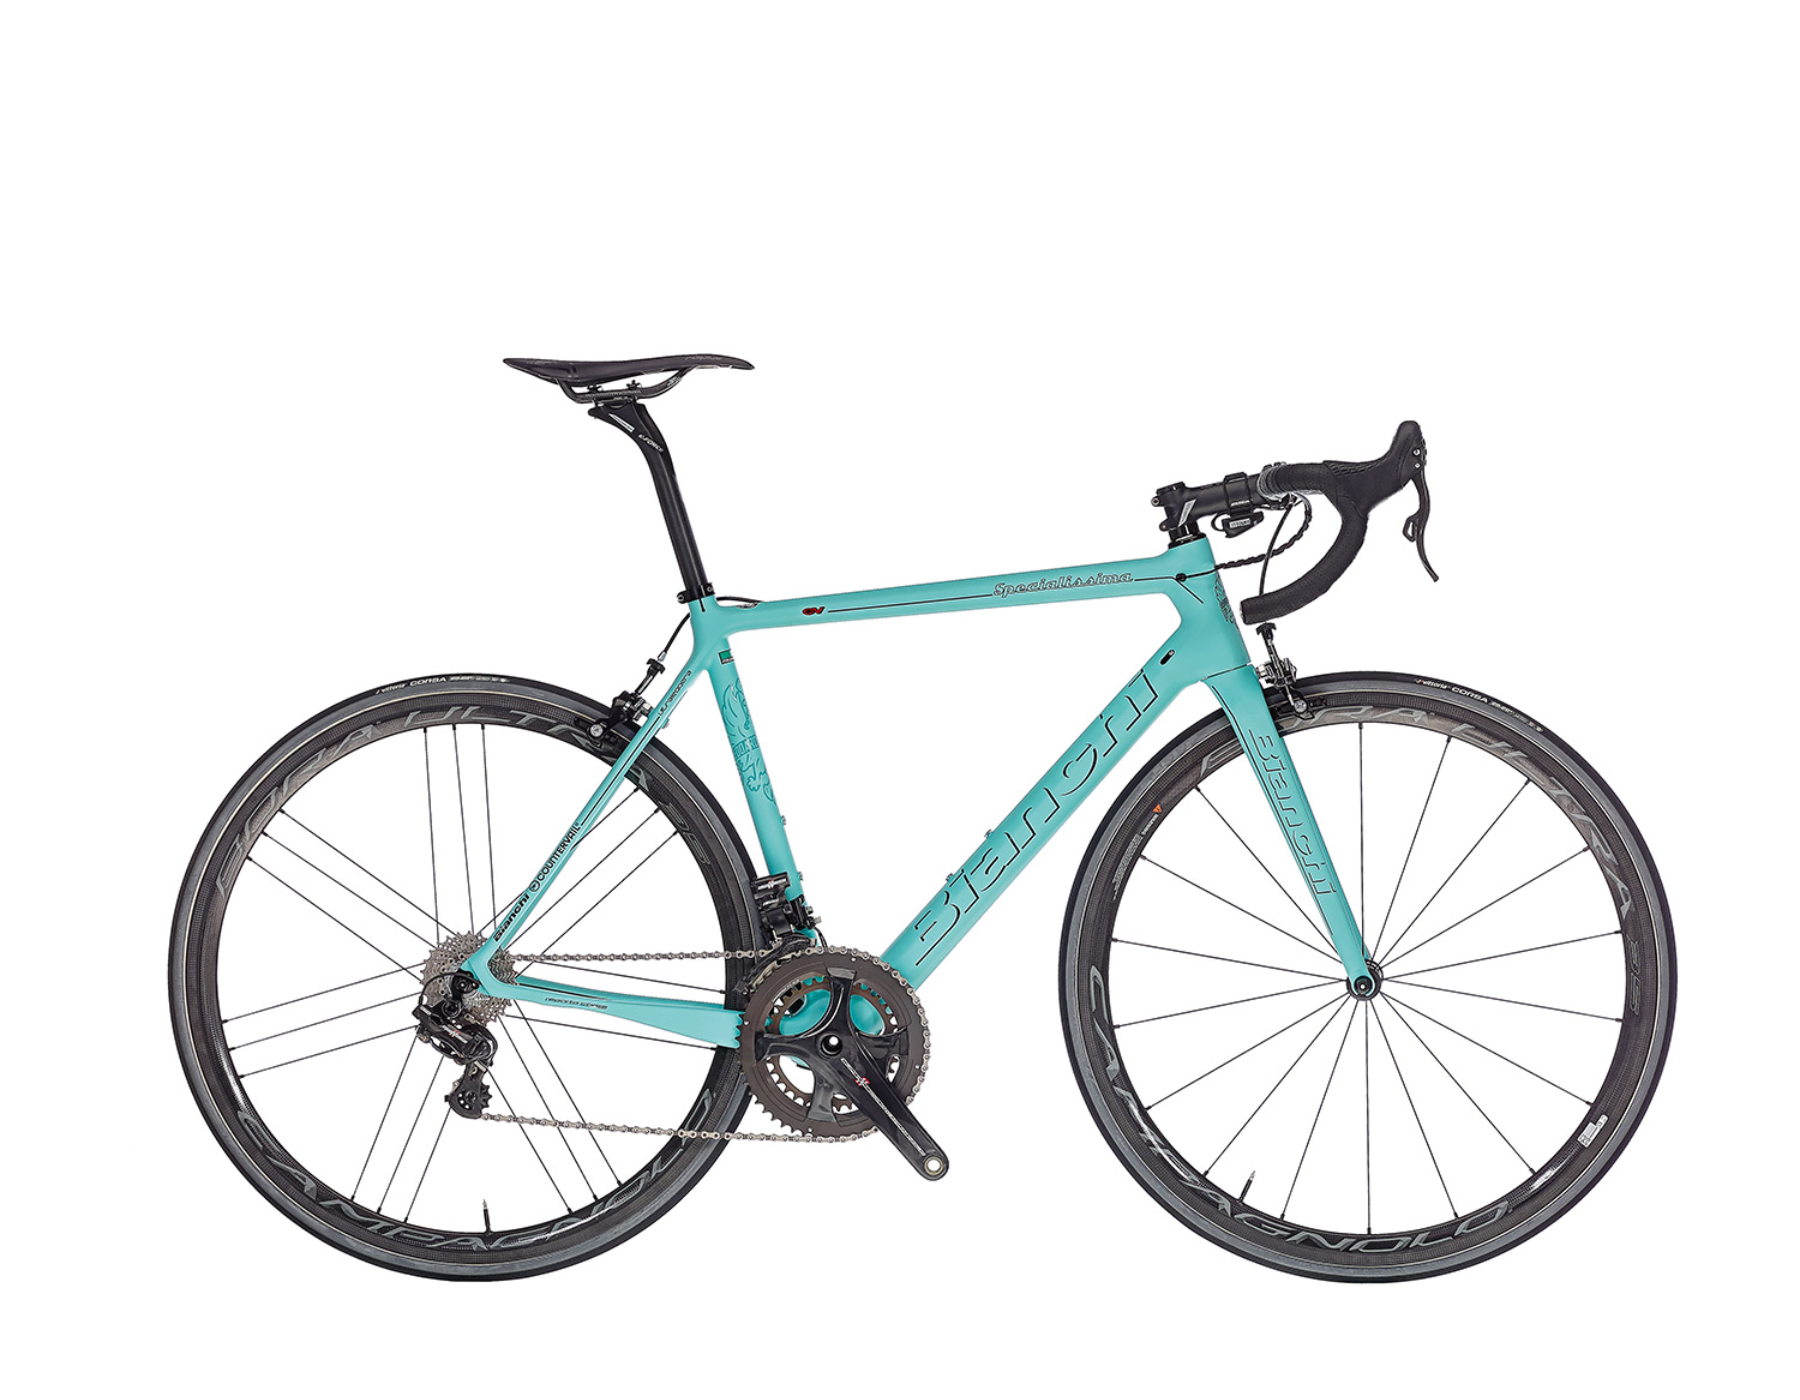 BIANCHI_SPECIALISSIMA_SUPER_RECORD_COMPACT_EPS_11sp_52/36